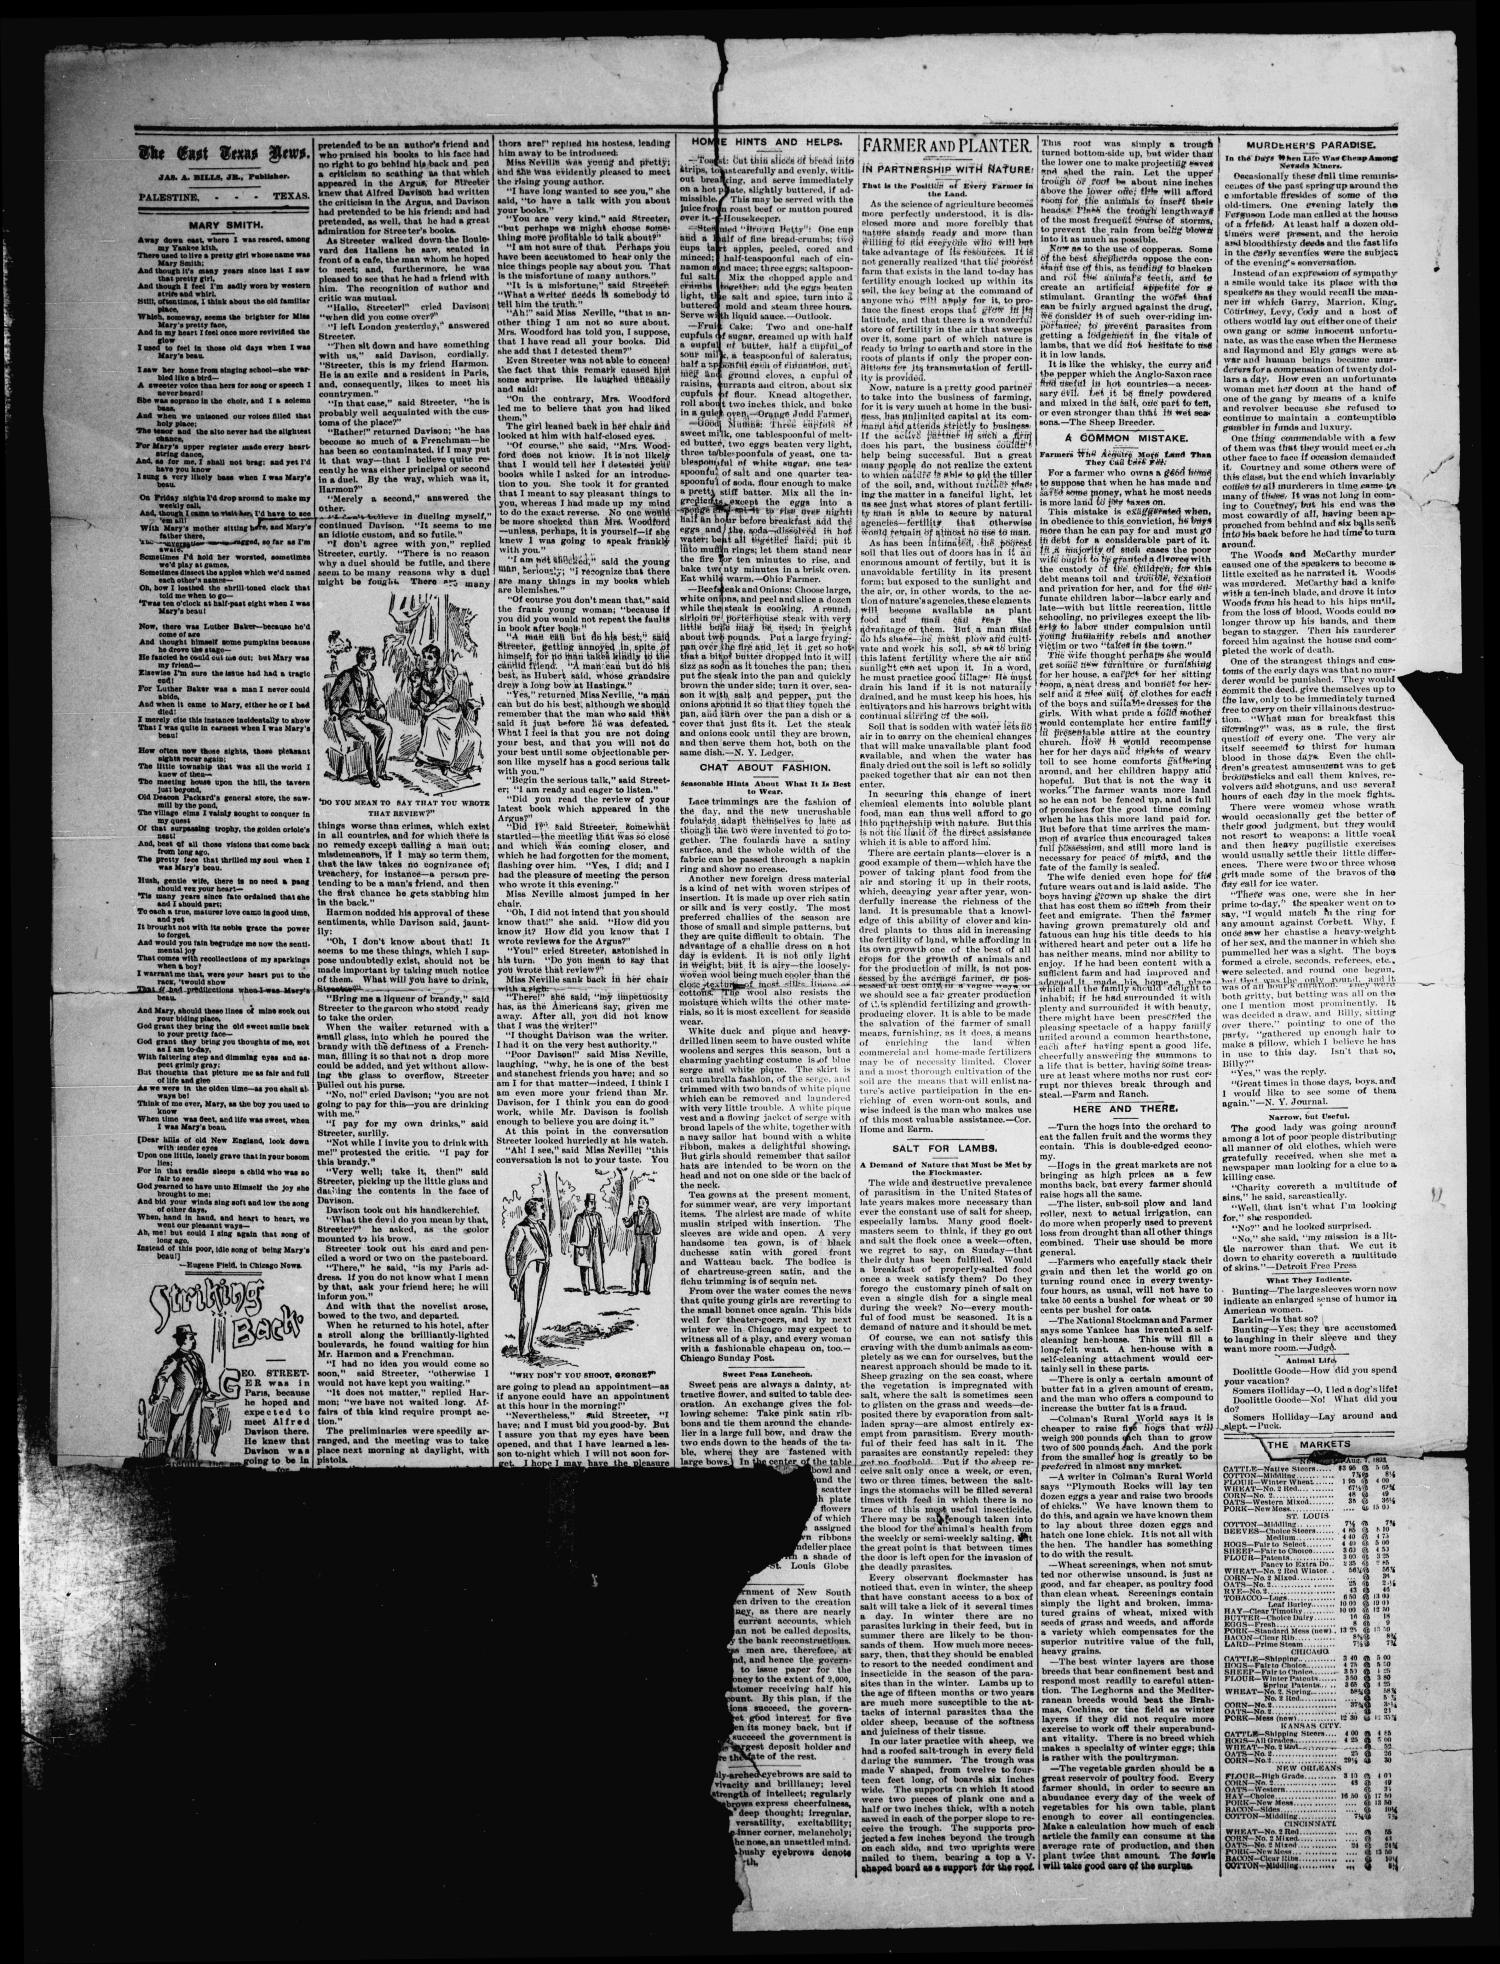 The East Texas News. (Palestine, Tex.), Vol. 20, No. 1, Ed. 1 Friday, August 11, 1893                                                                                                      [Sequence #]: 4 of 4